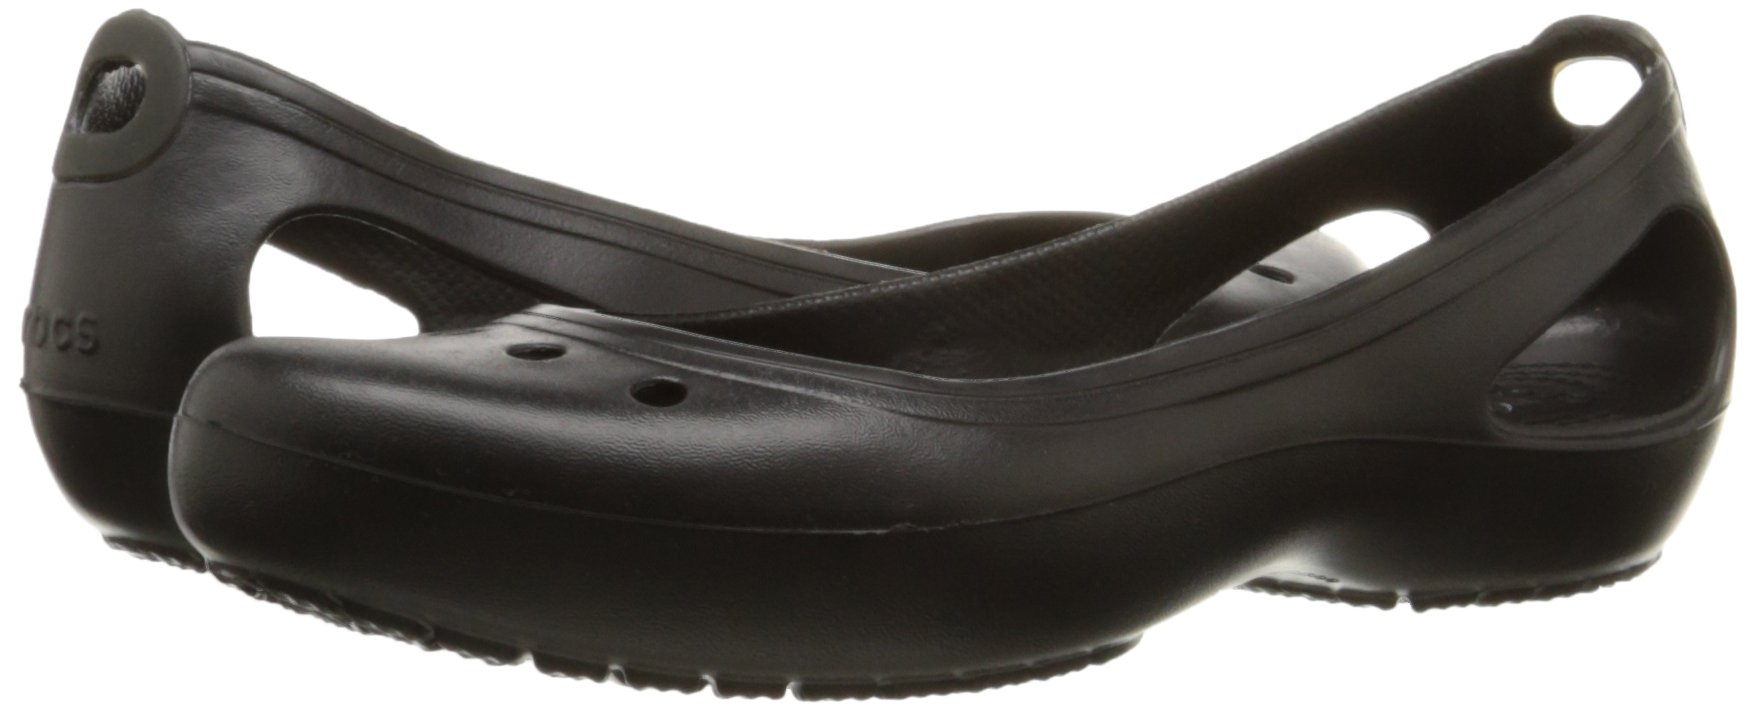 Crocs Women's Kadee Ballet Flat,Black/Black,8 M US by Crocs (Image #6)